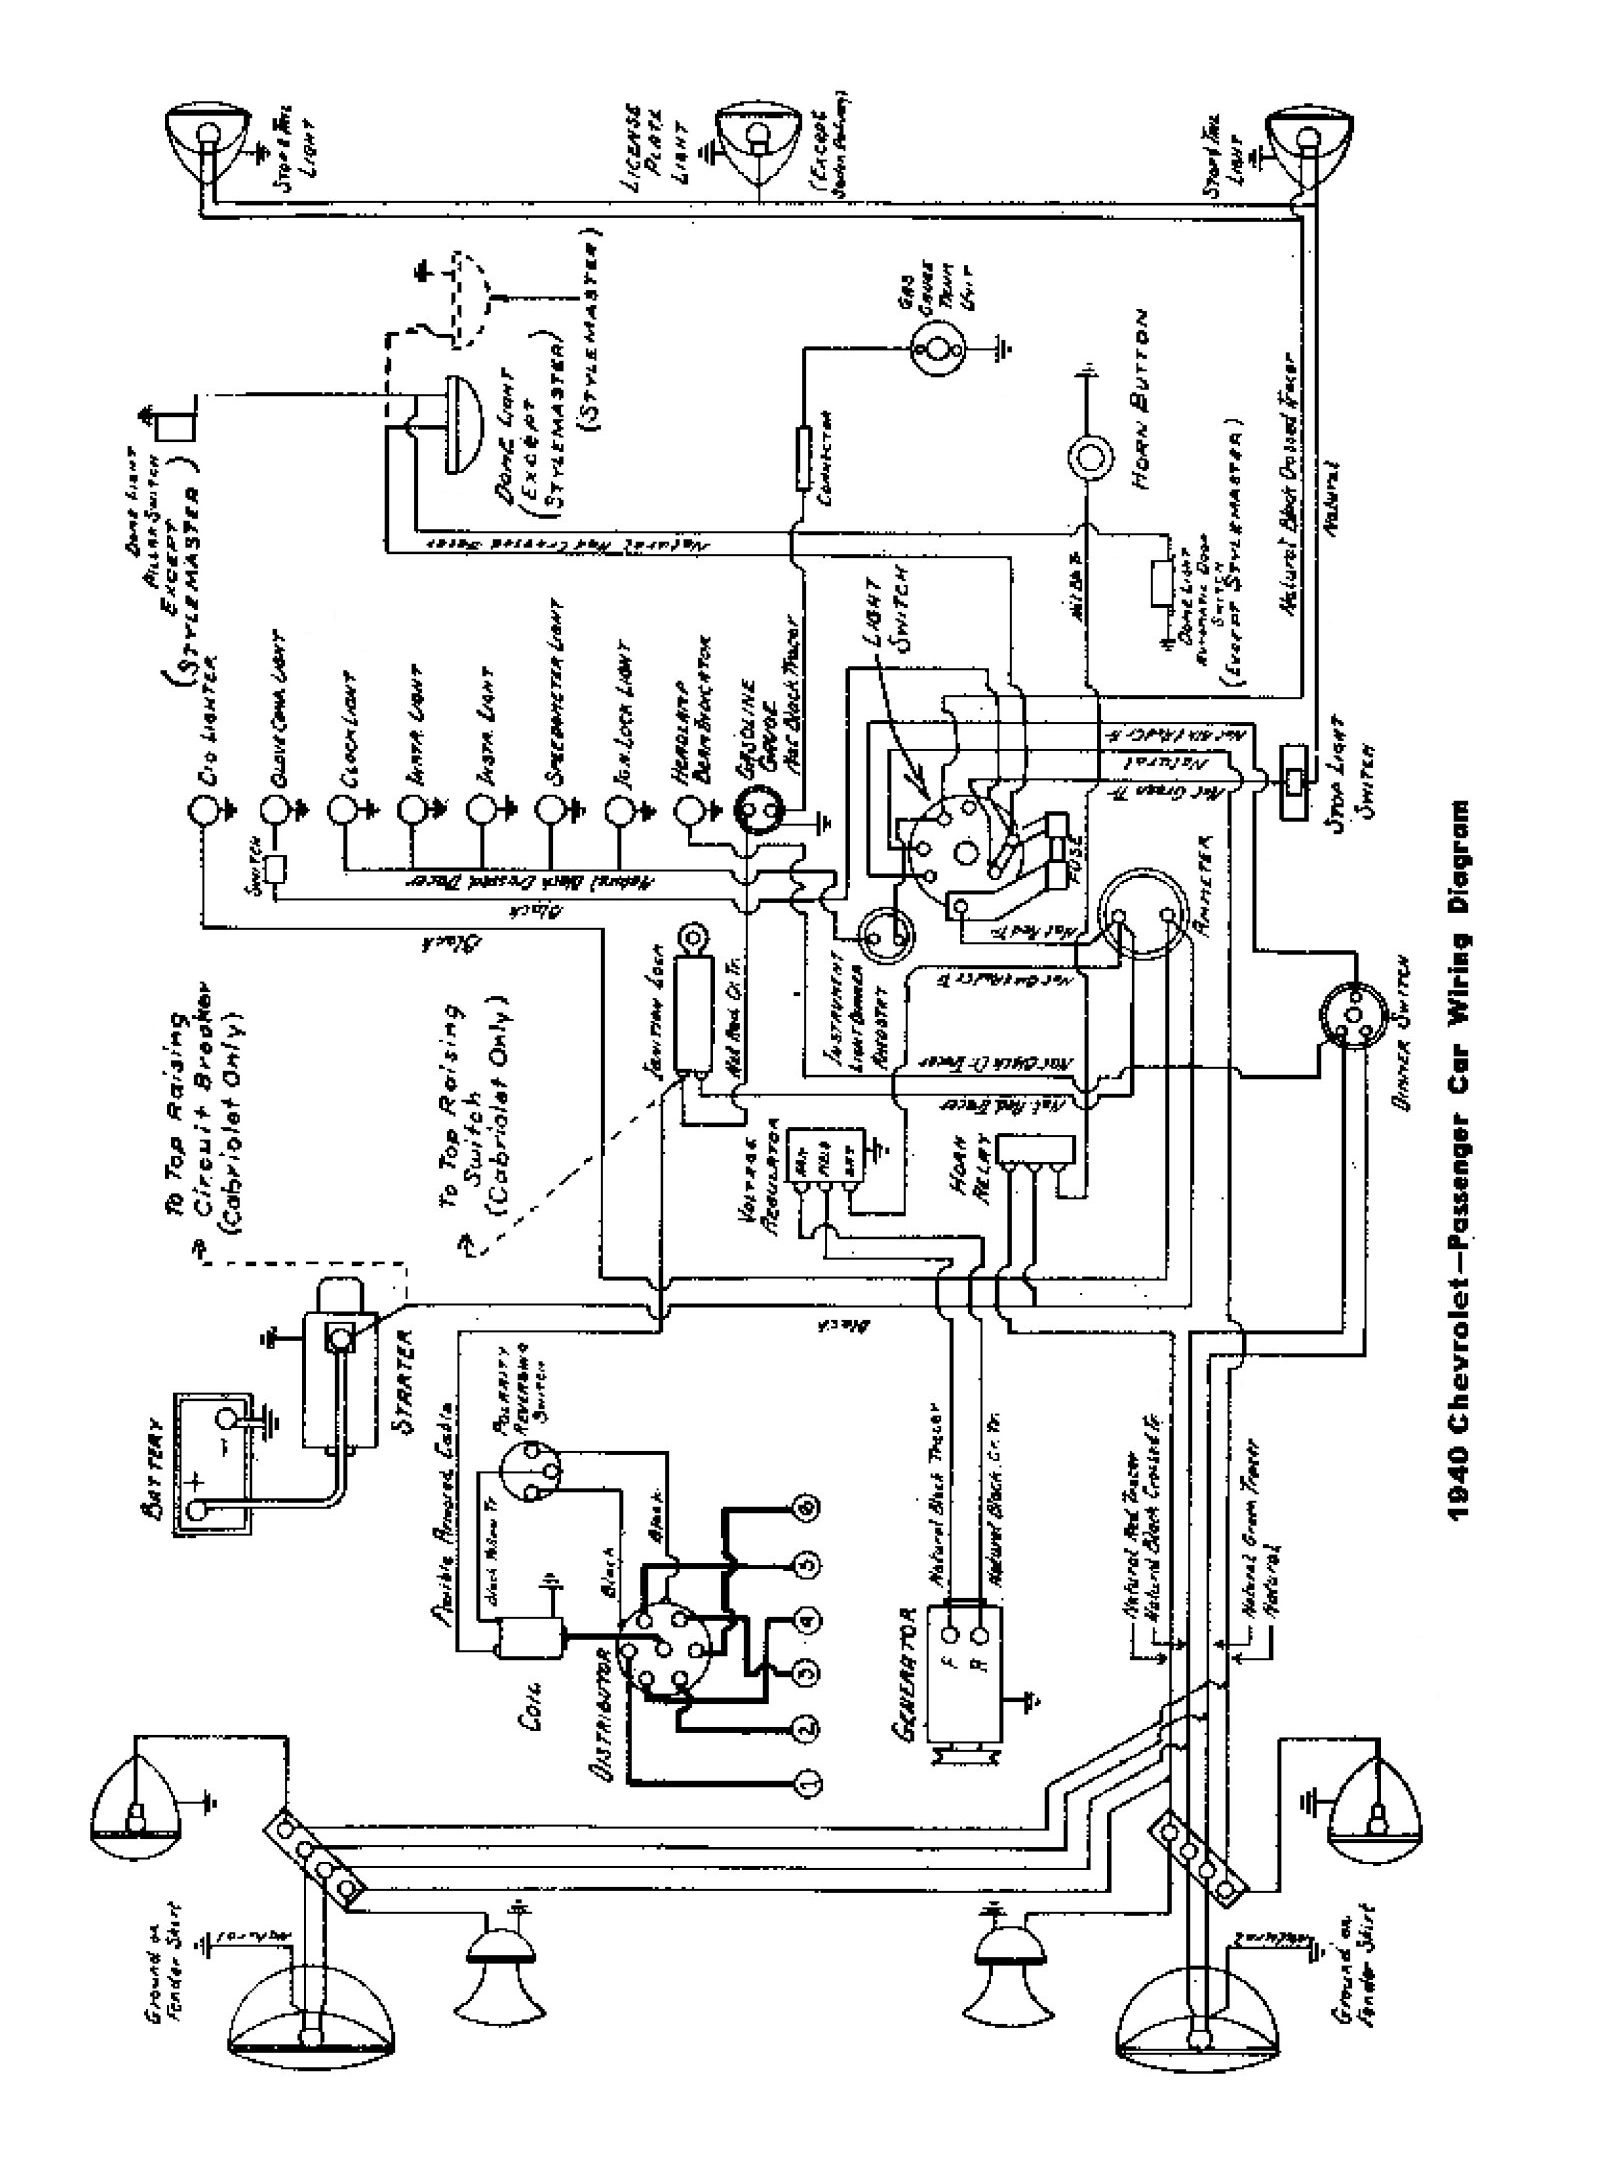 hight resolution of chevy wiring diagrams electric heater wiring diagram harvester electric motor wiring diagram